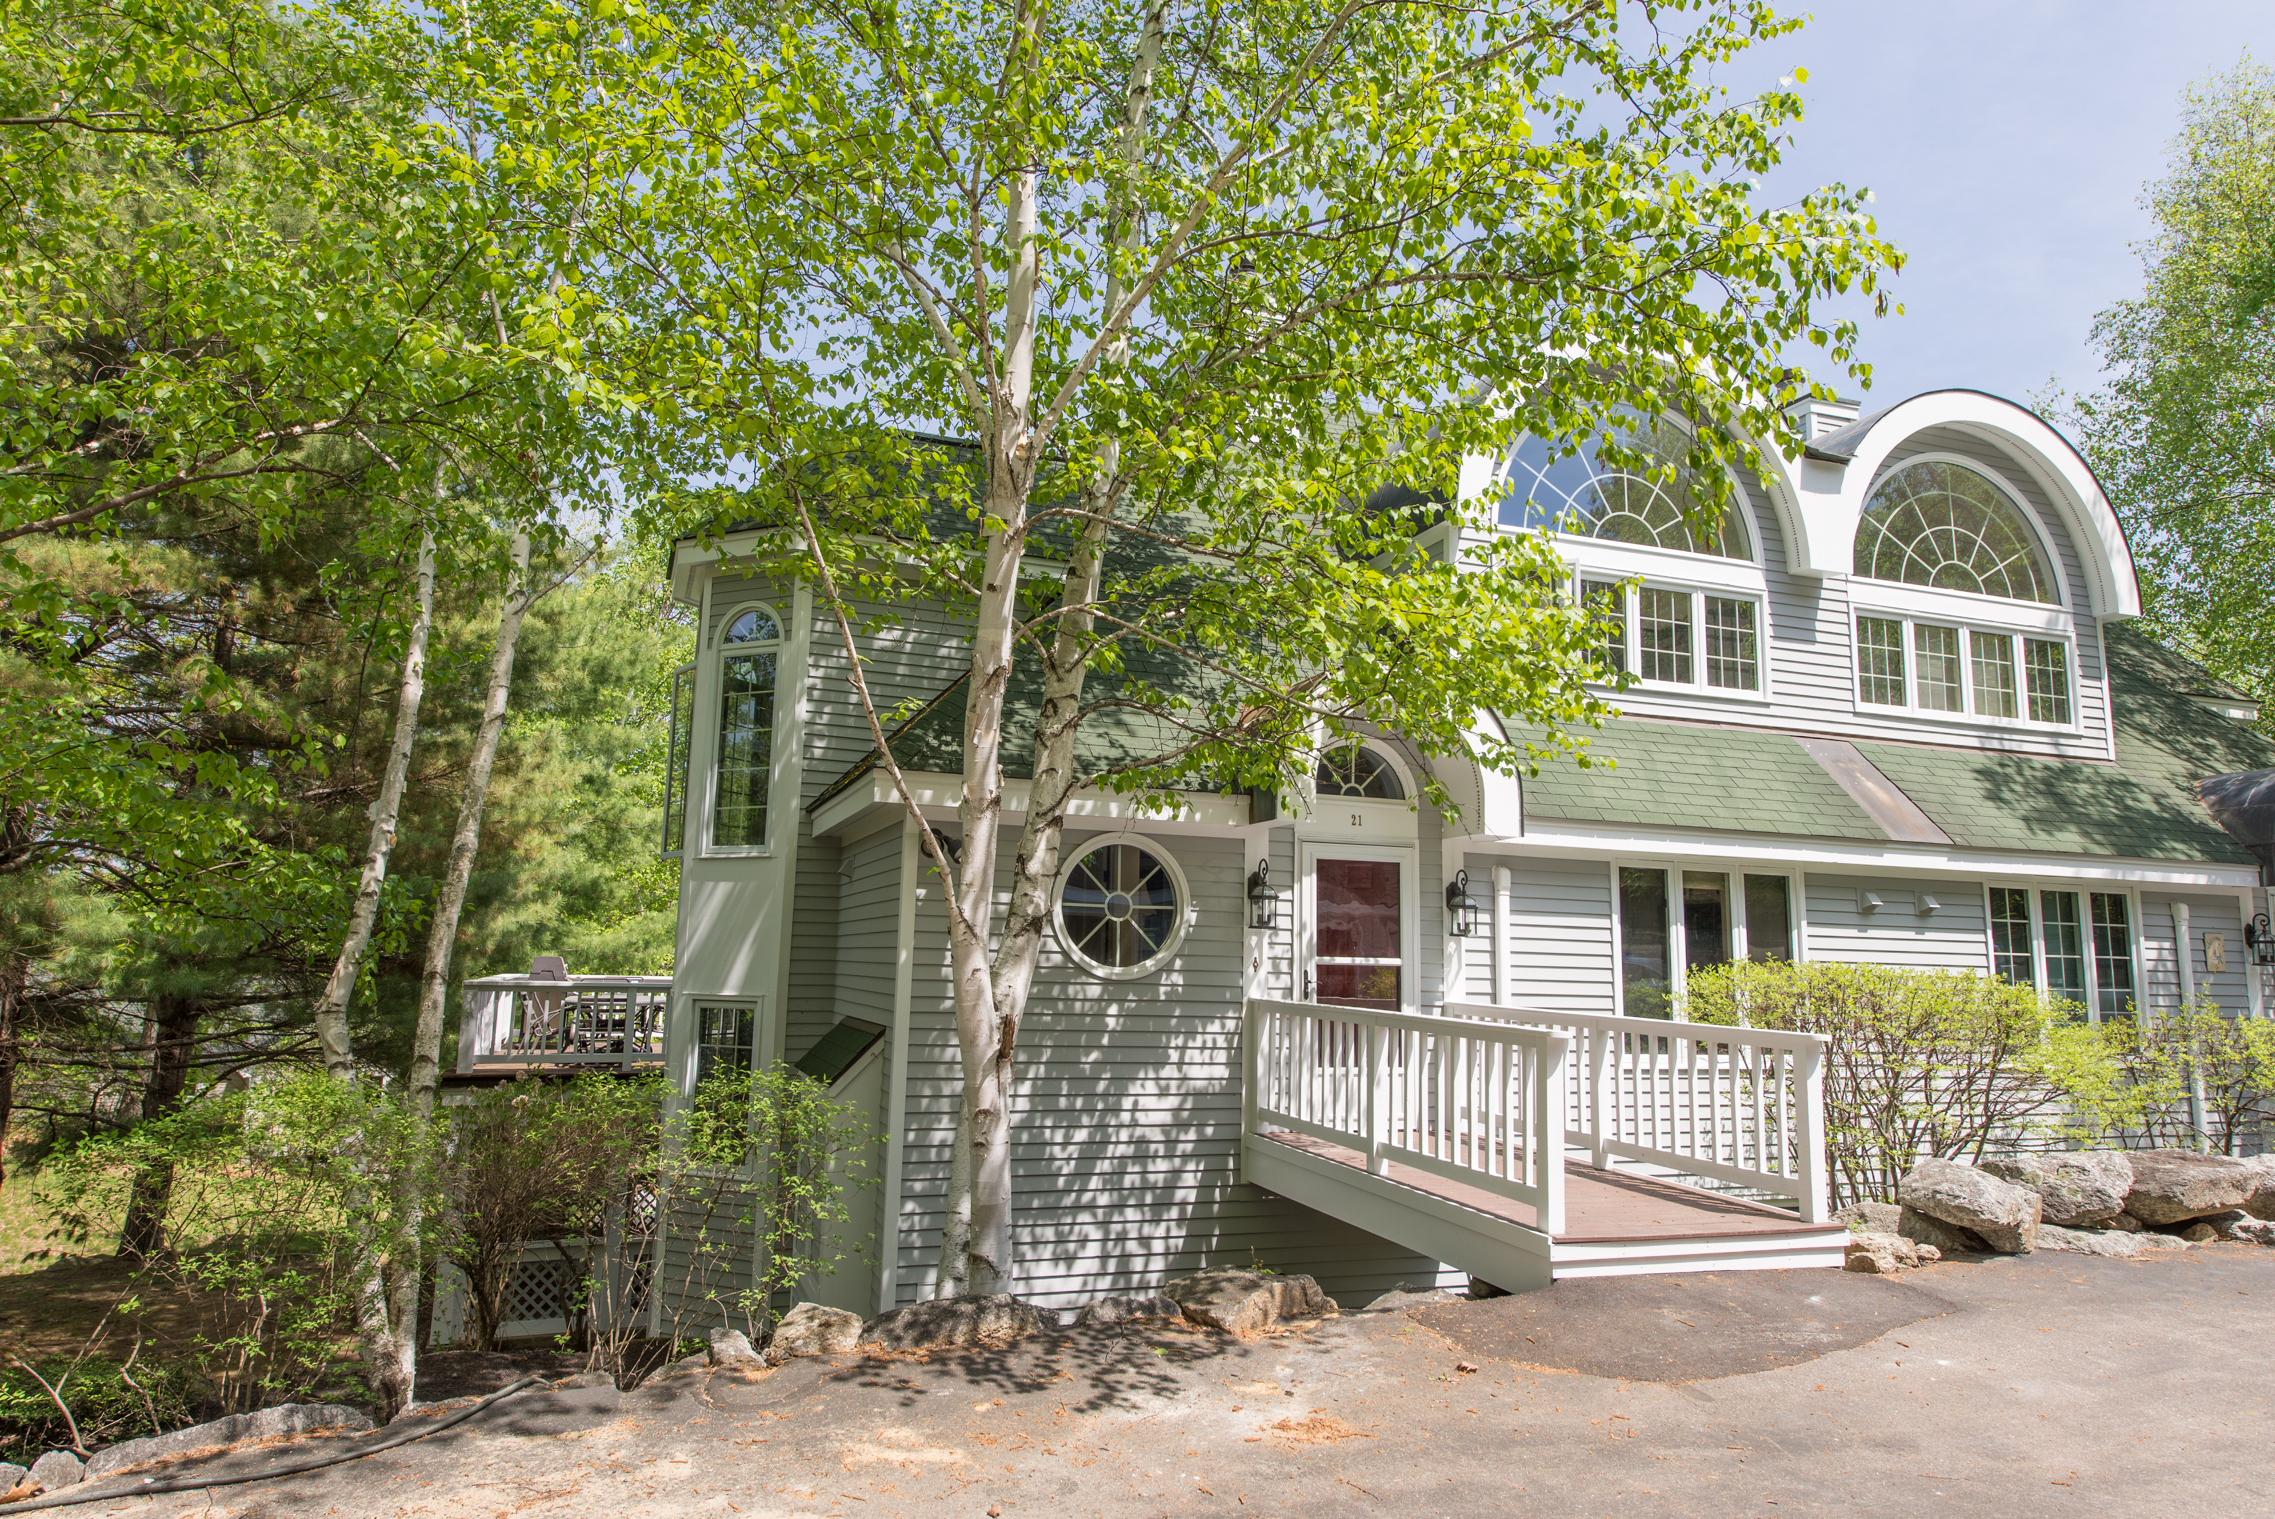 Condominium for Sale at Townhouse at the Grouse Point Community 21 Hawk Ridge Rd Meredith, New Hampshire 03253 United States